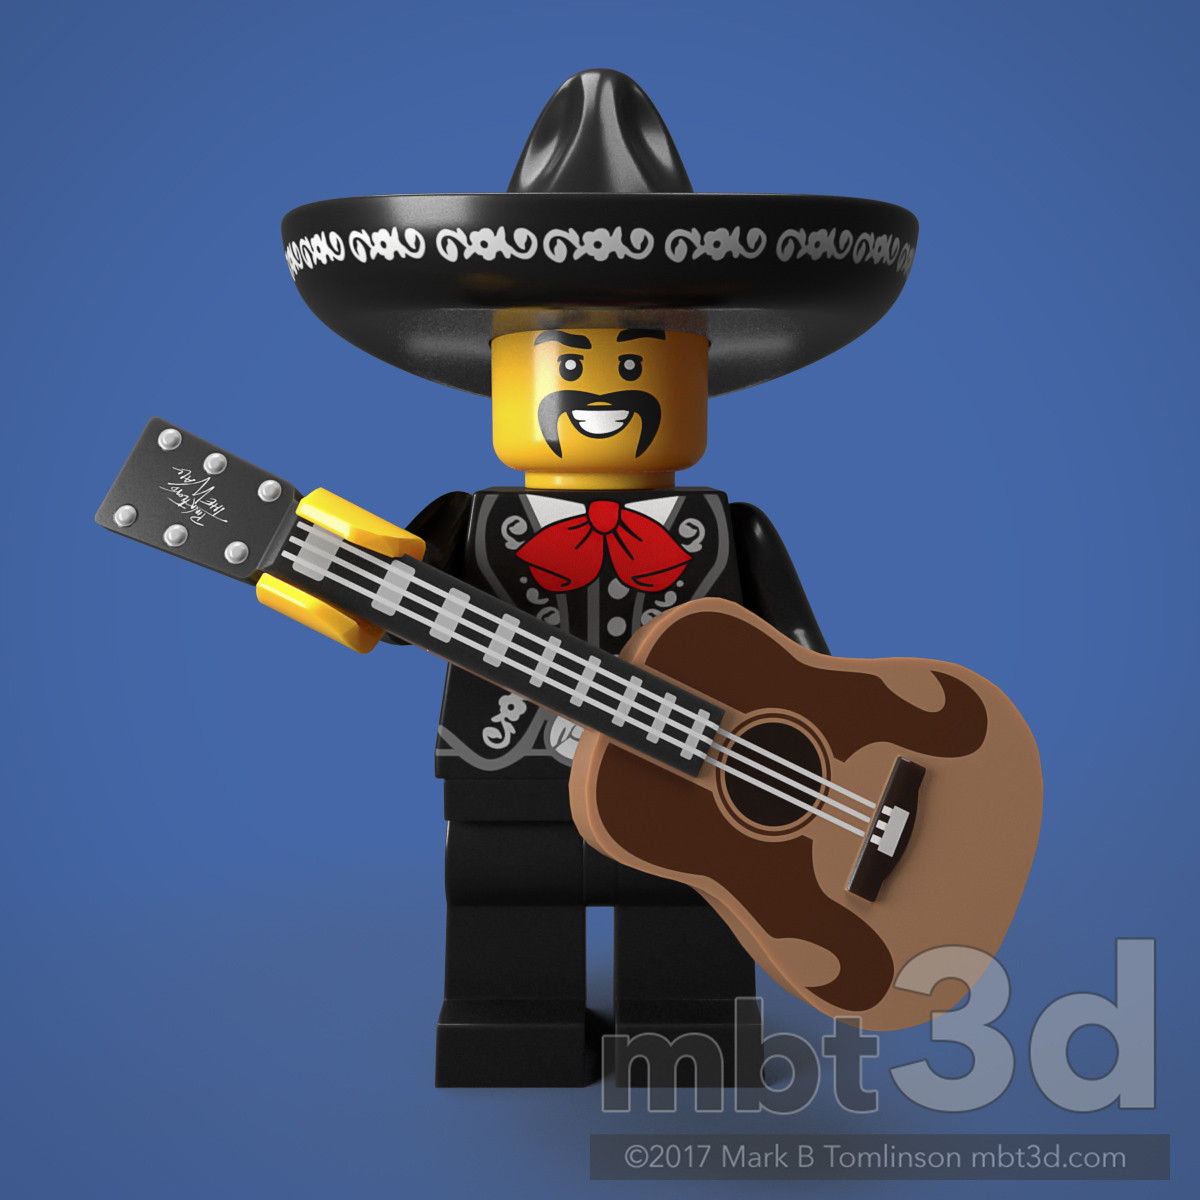 El Mexicano Minifigure Guitar